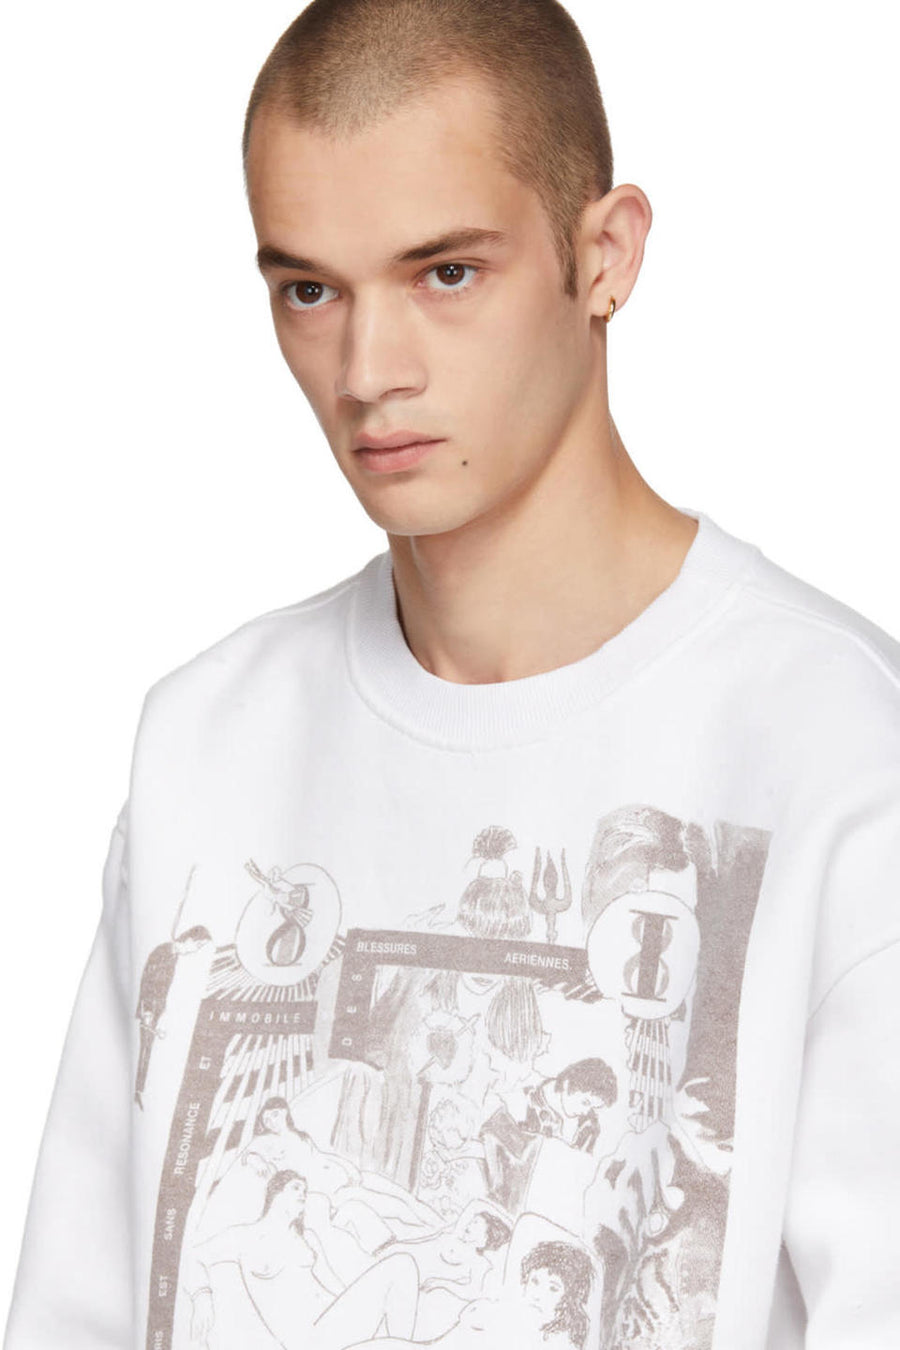 Enfants Riches Déprimés White Bath House Orgy Sweatshirt